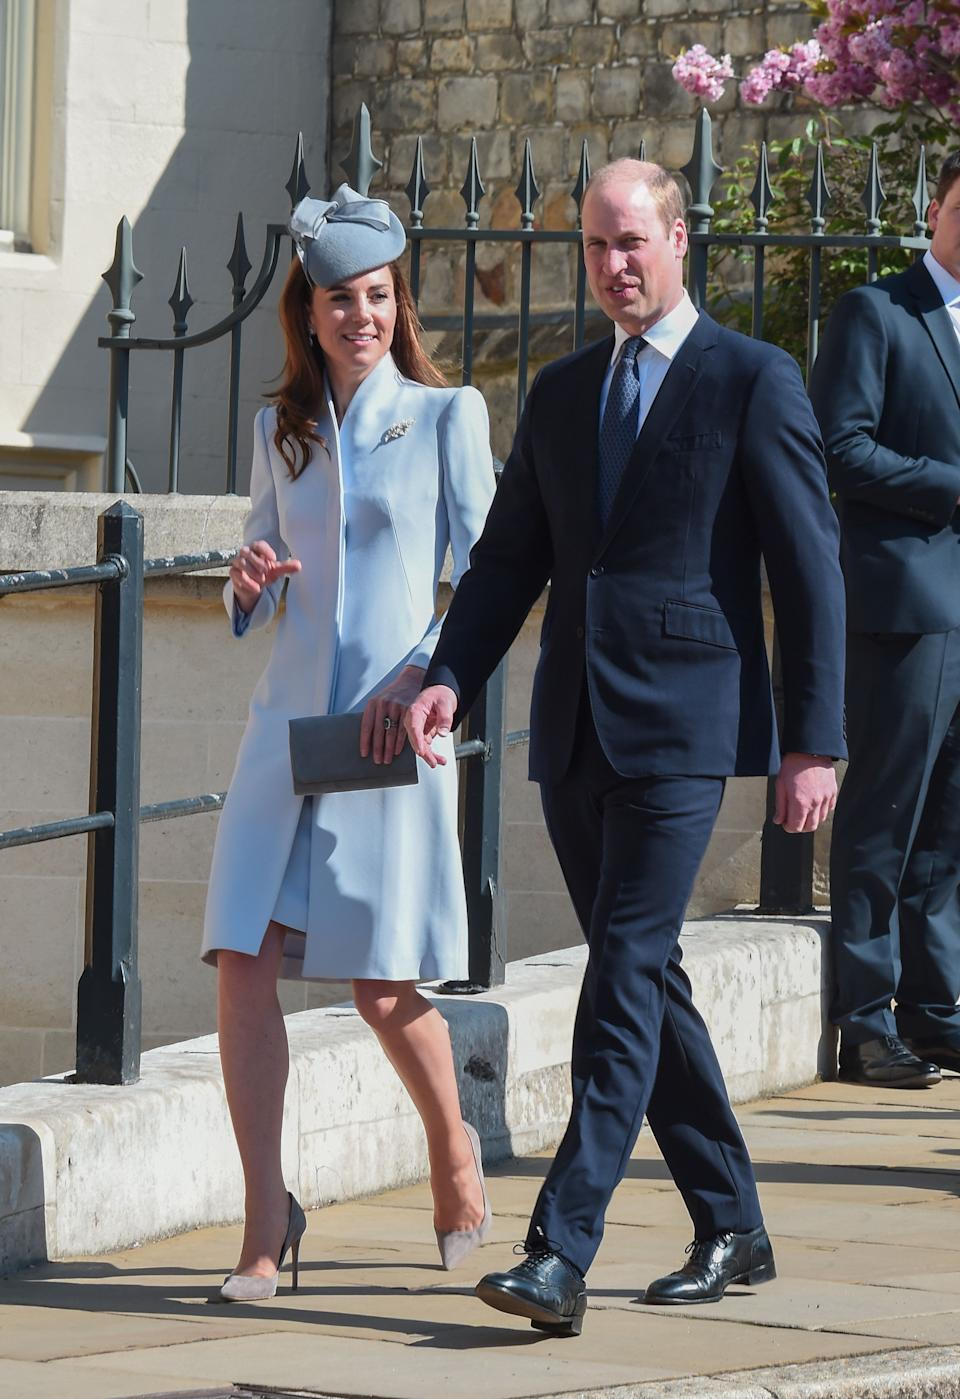 The Duke and Duchess of Cambridge attend the Easter Mattins Service at St George's Chapel, Windsor Castle [Photo: PA]